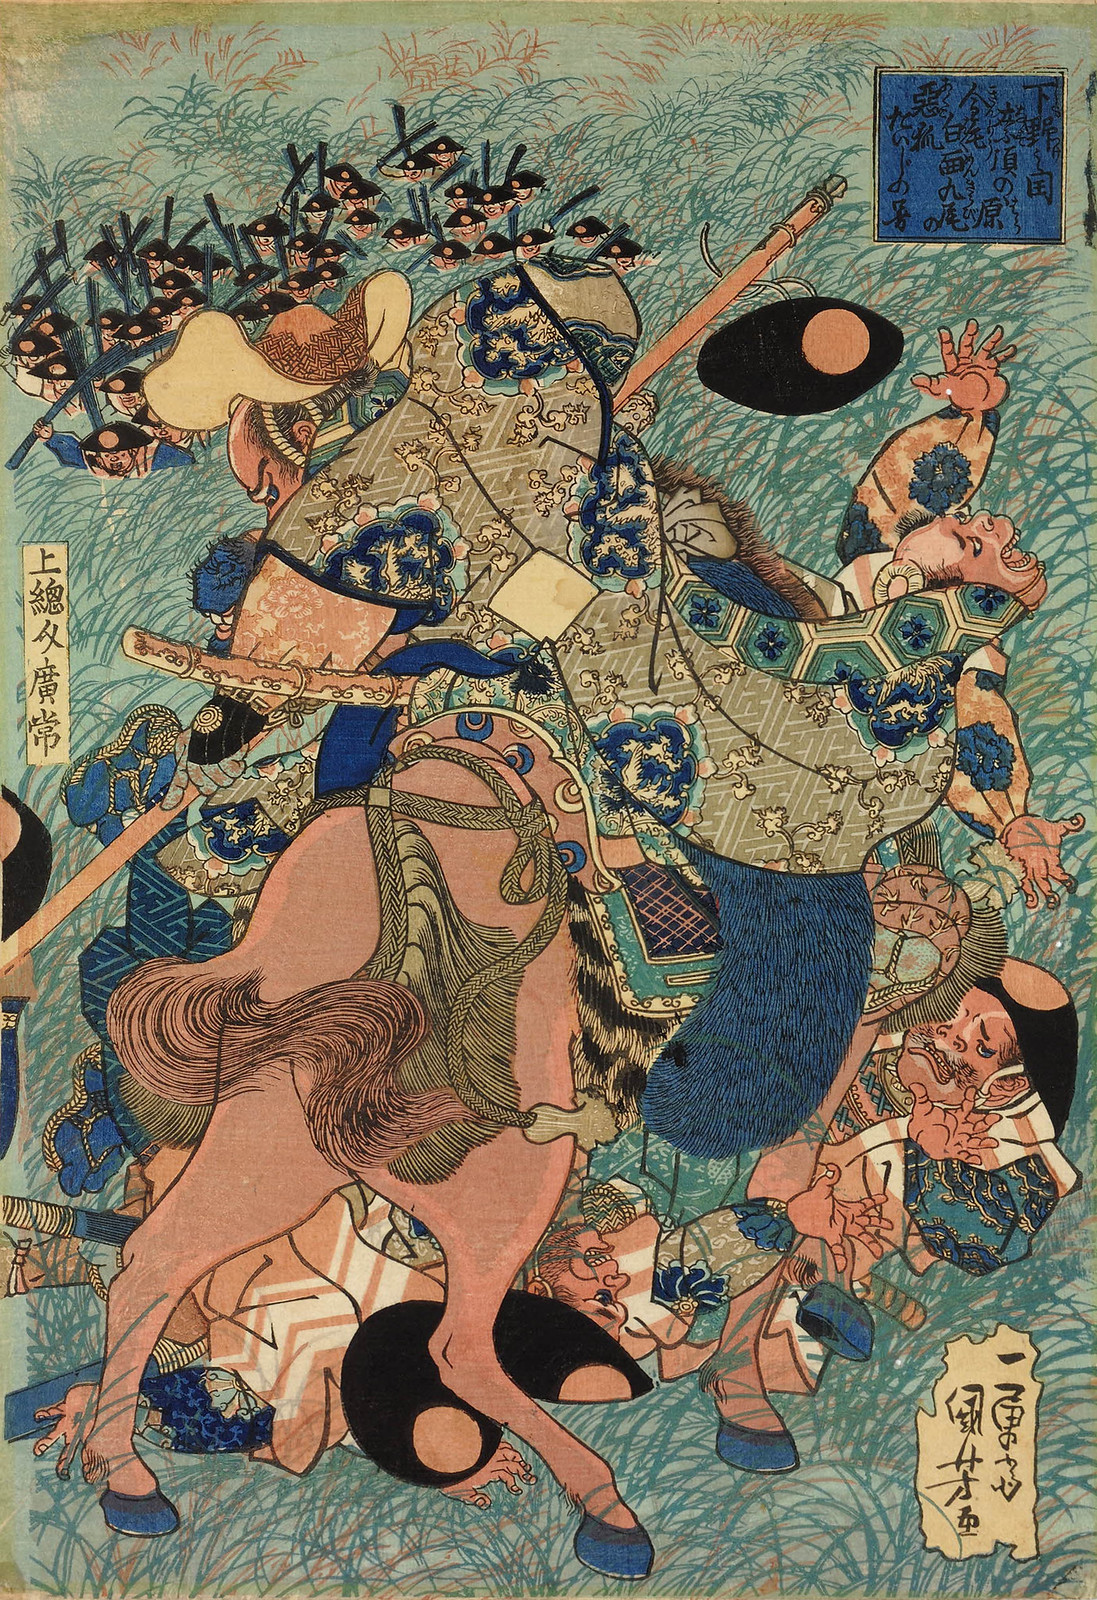 Utagawa Kuniyoshi - The Nine-tailed Fox slain on Nasu moor, Shimotsuke, 1834 (right panel)